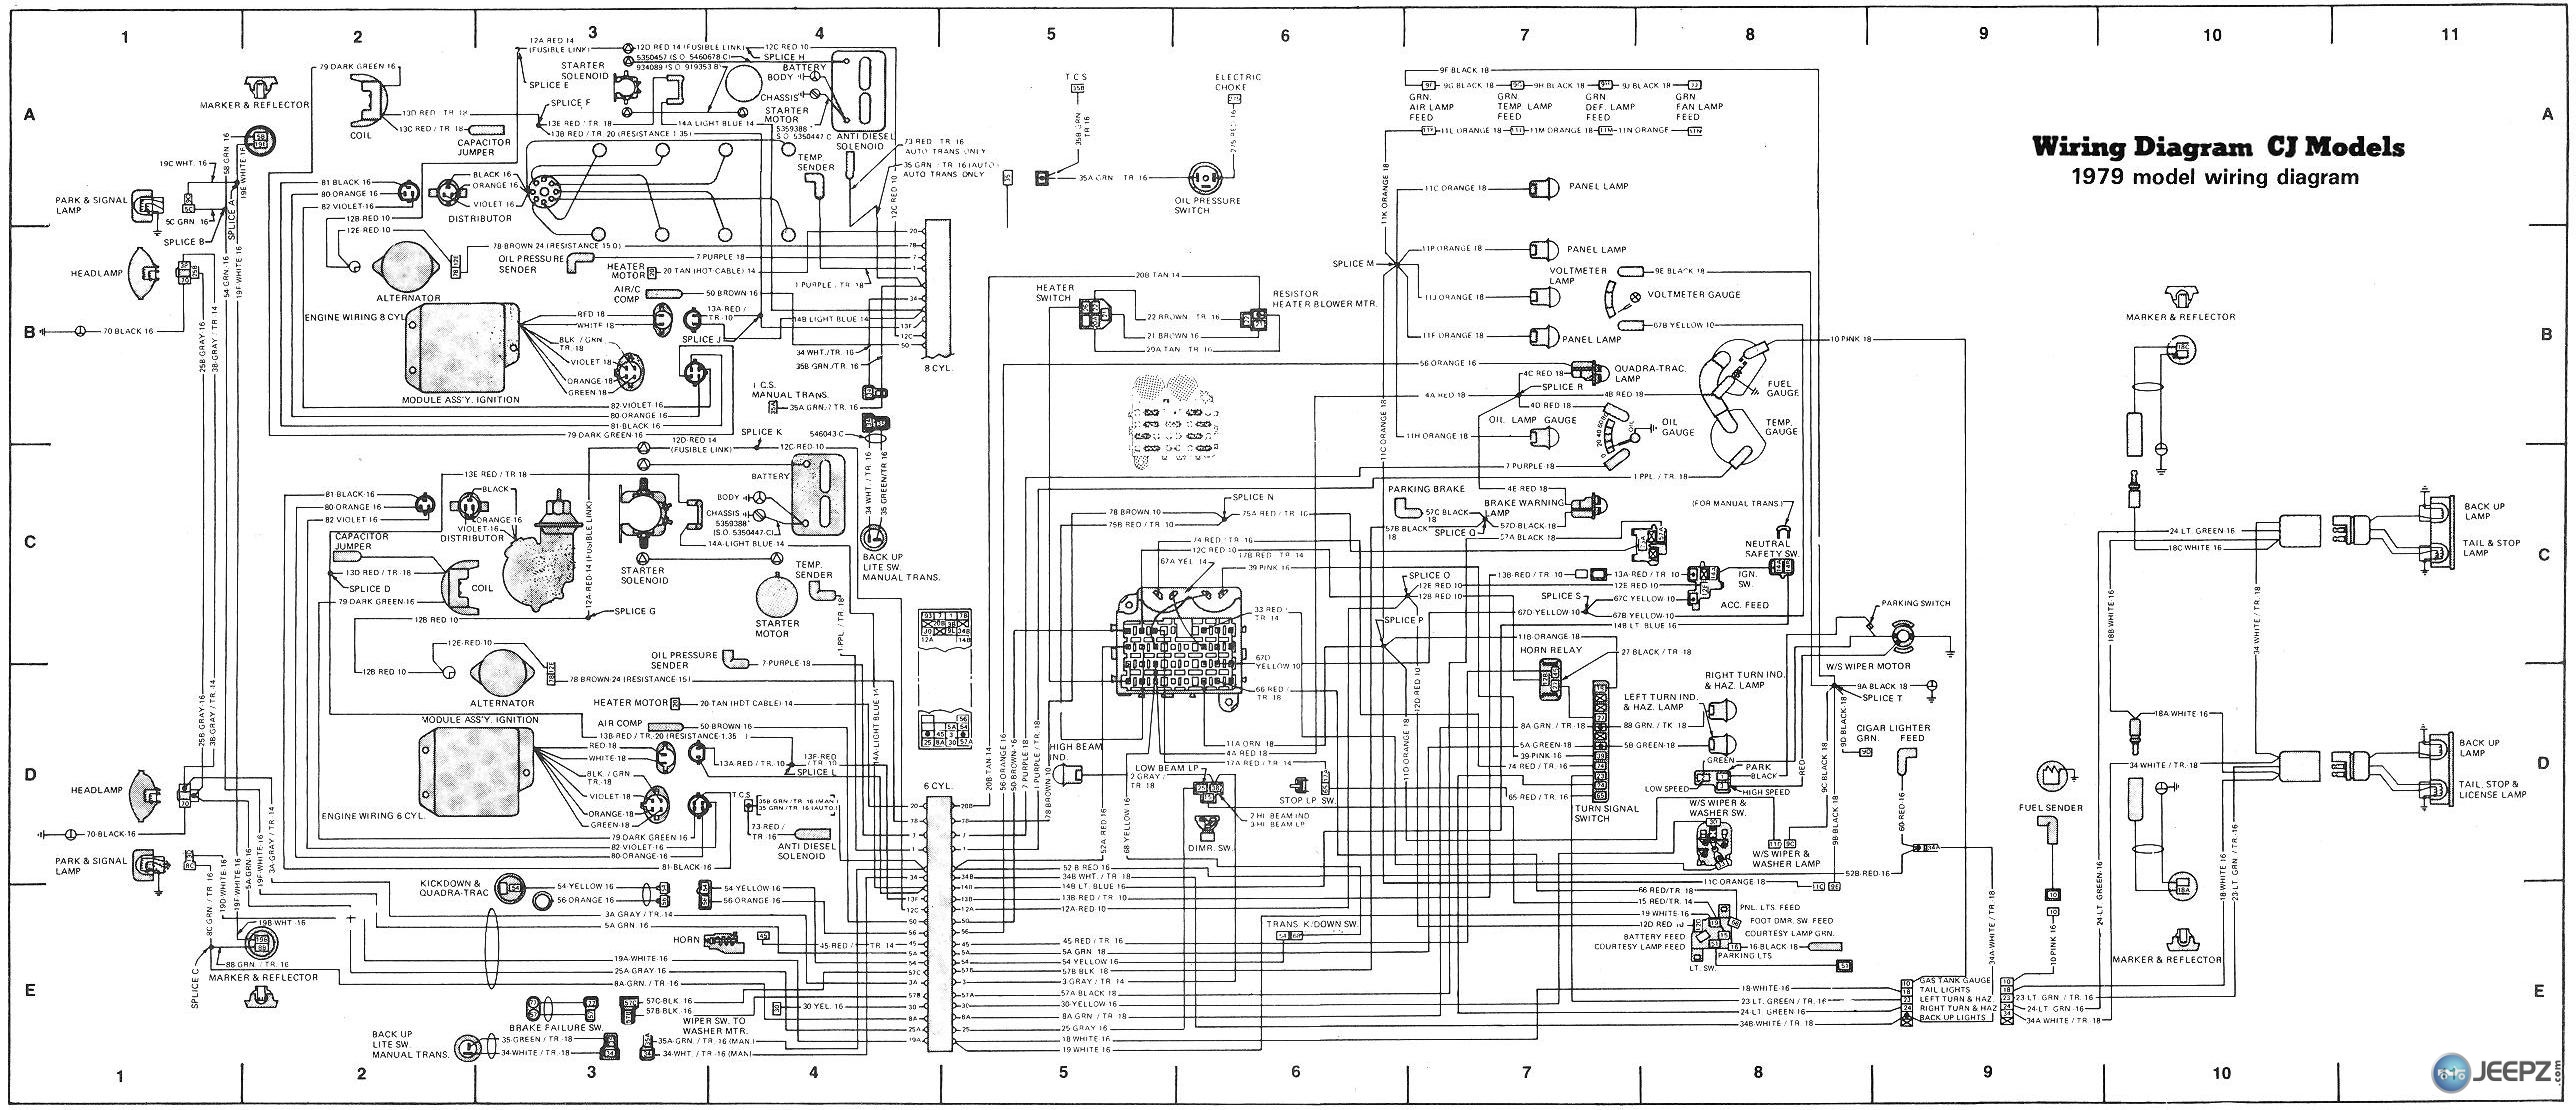 suzuki samurai headlight wiring diagram wiring diagram suzuki samurai hoses 22re wiring diagram better wiring diagram online1984 suzuki samurai wiring diagram wiring diagram1971 cj5 wiring harness